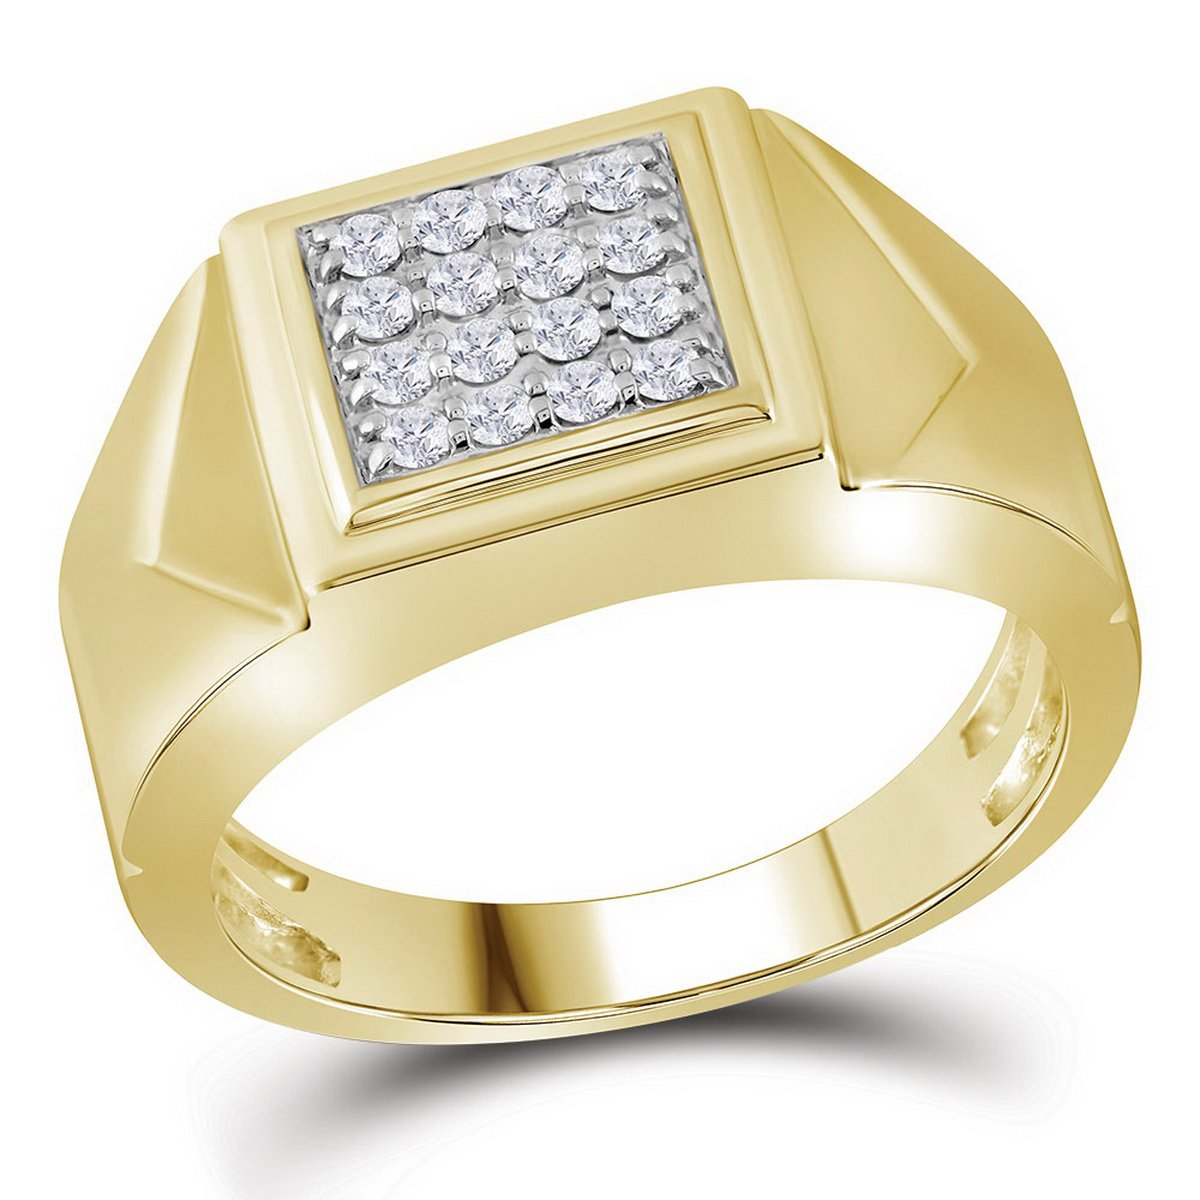 10K Yellow Gold Mens Square Cluster Genuine Diamond Pinky Ring Band 1/3 CT (I2-I3 clarity; G-H color)